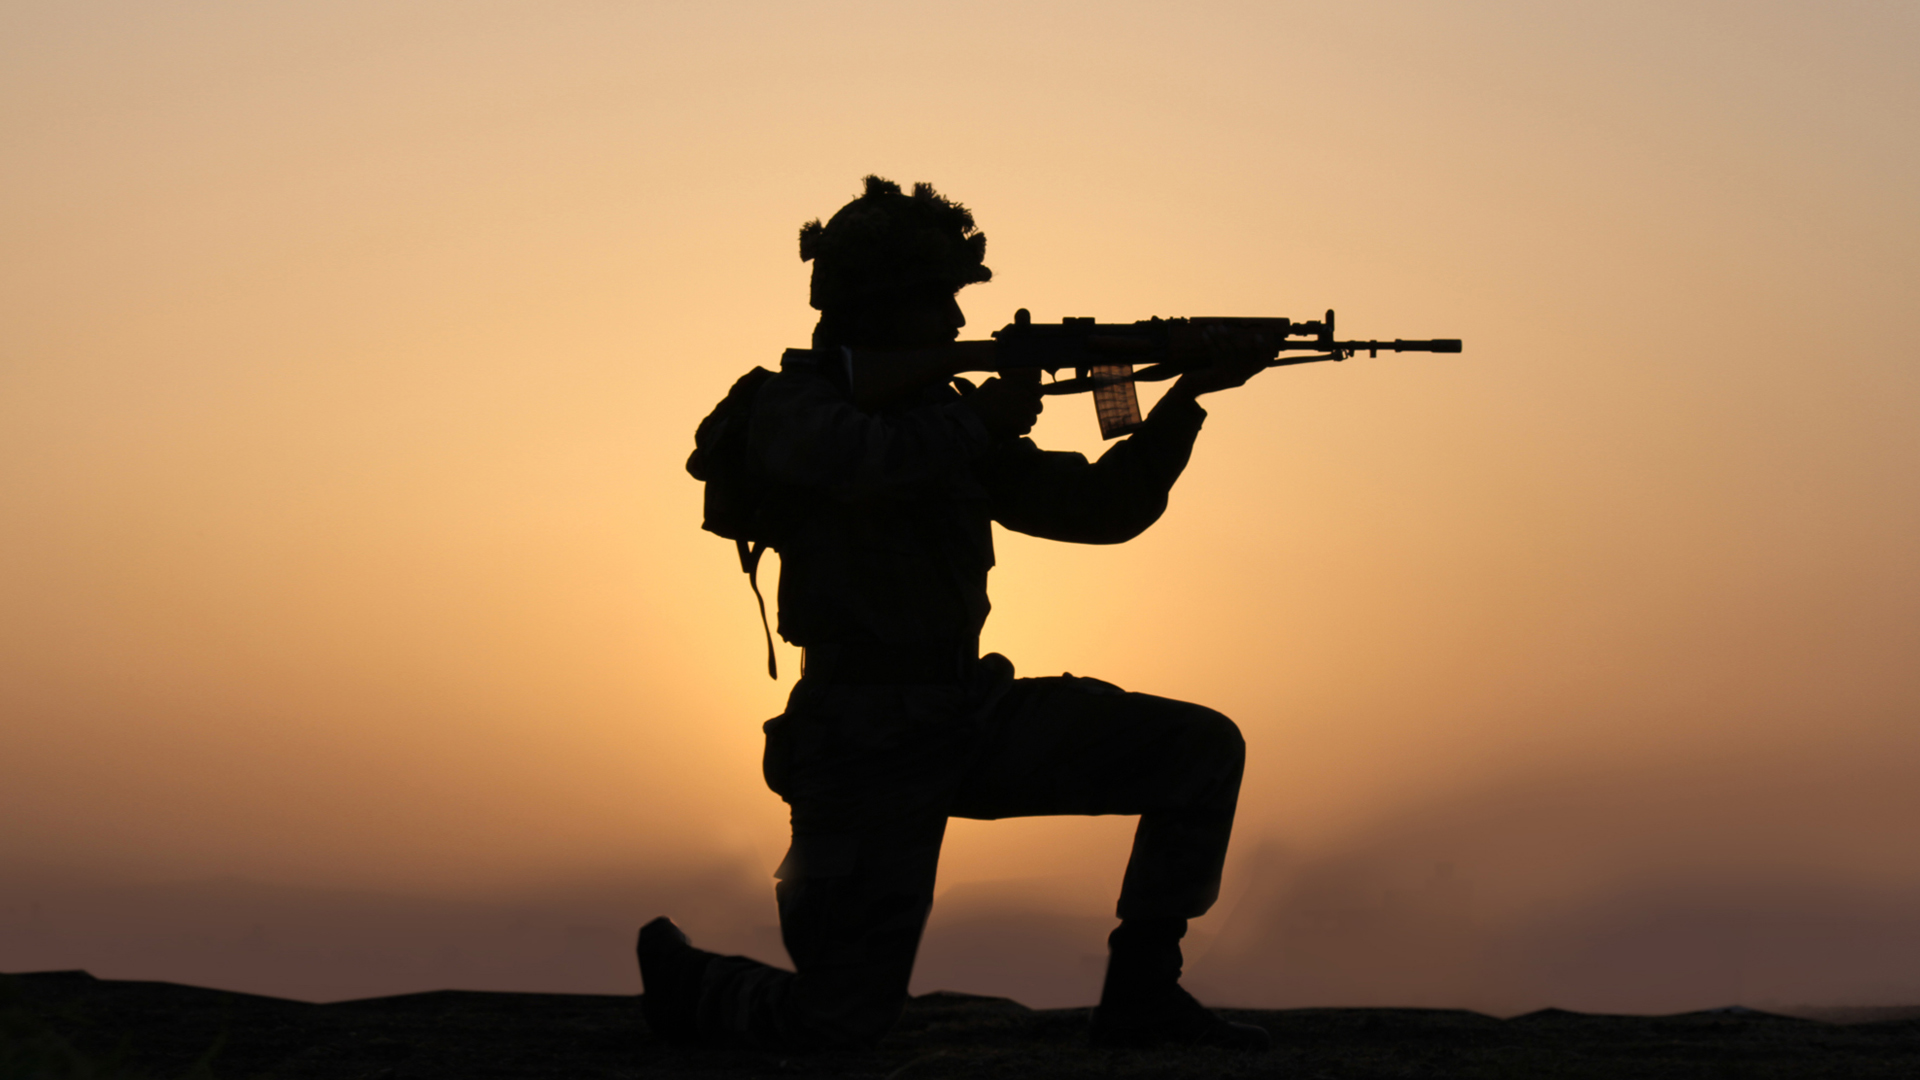 Army Love Hd Wallpaper : Indian Army Wallpaper with Soldier in Silhouette HD Wallpapers Wallpapers Download High ...